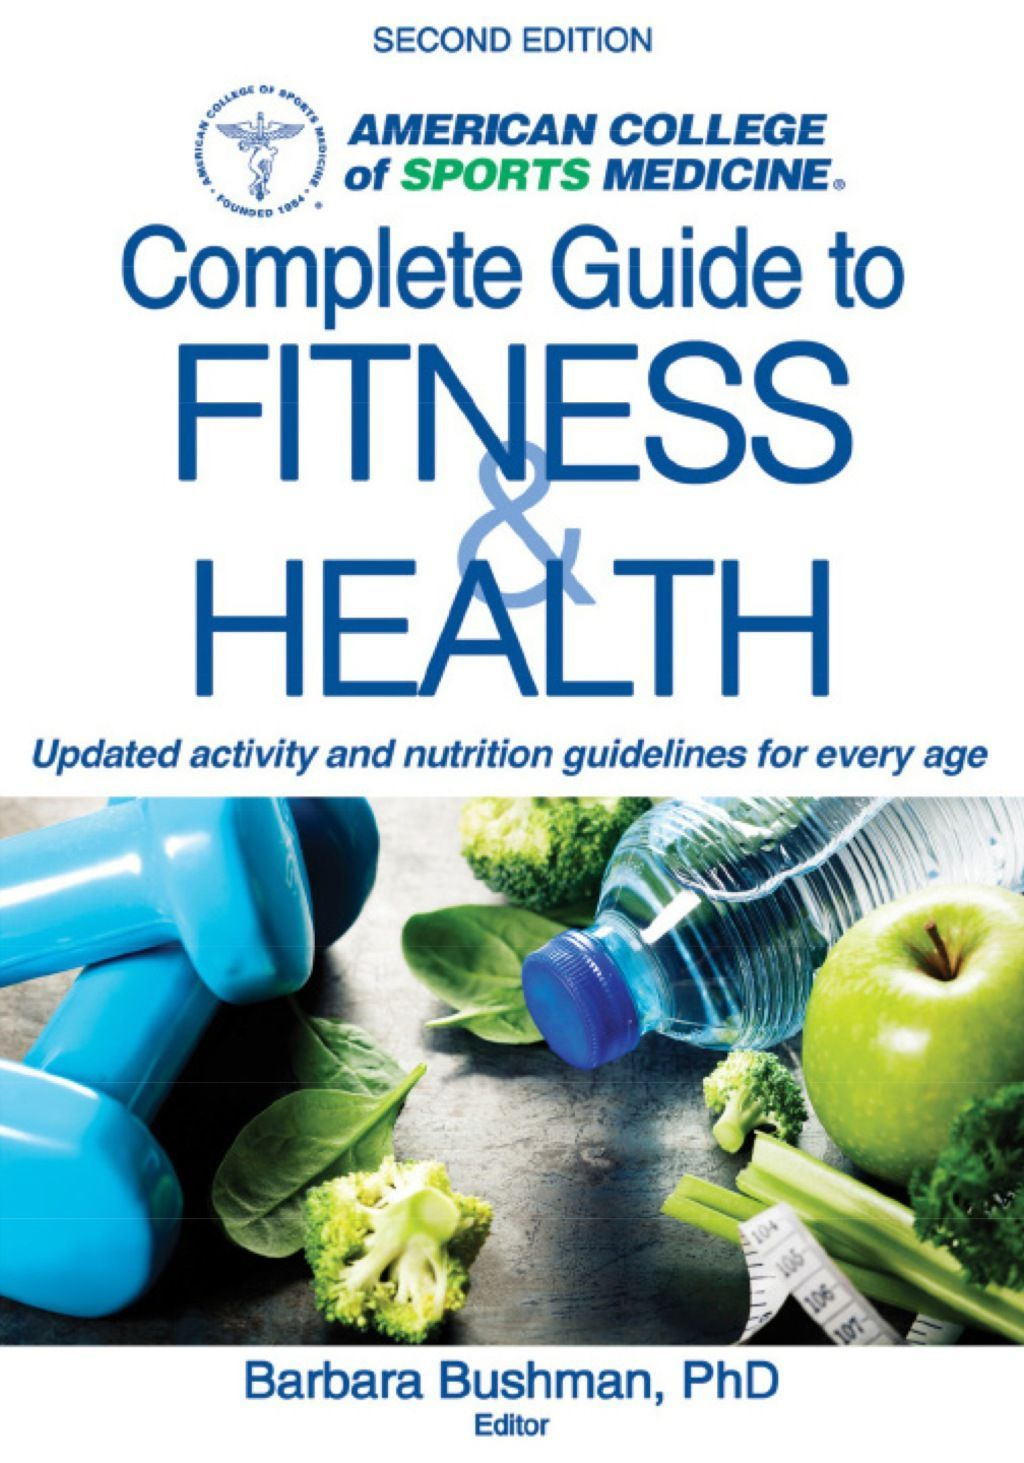 Acsm S Complete Guide To Fitness Health 2nd Edition Ebook Rental Coconut Health Benefits Health Fitness Health